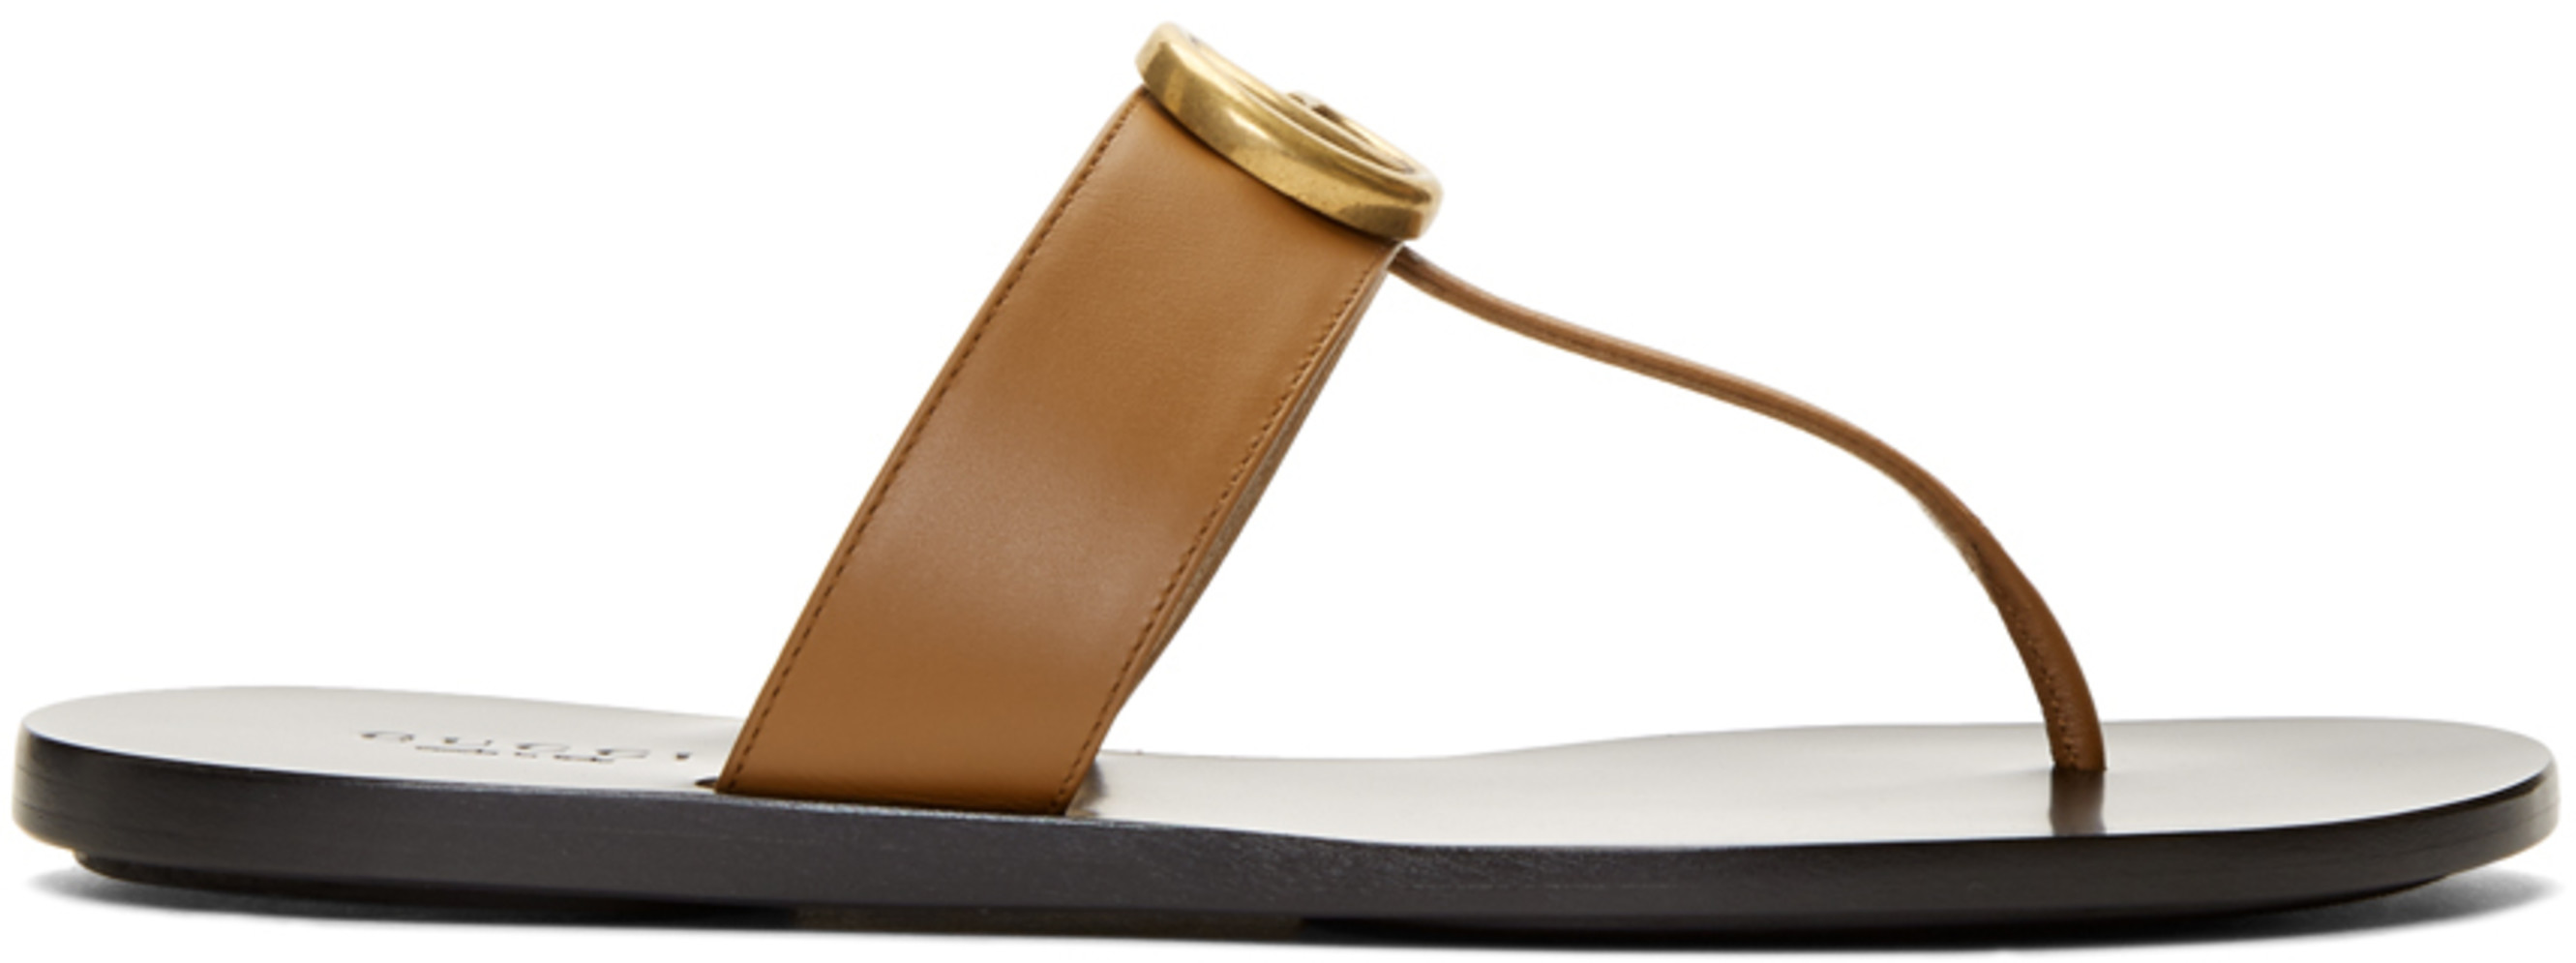 7310141ff3b Gucci shoes for Women